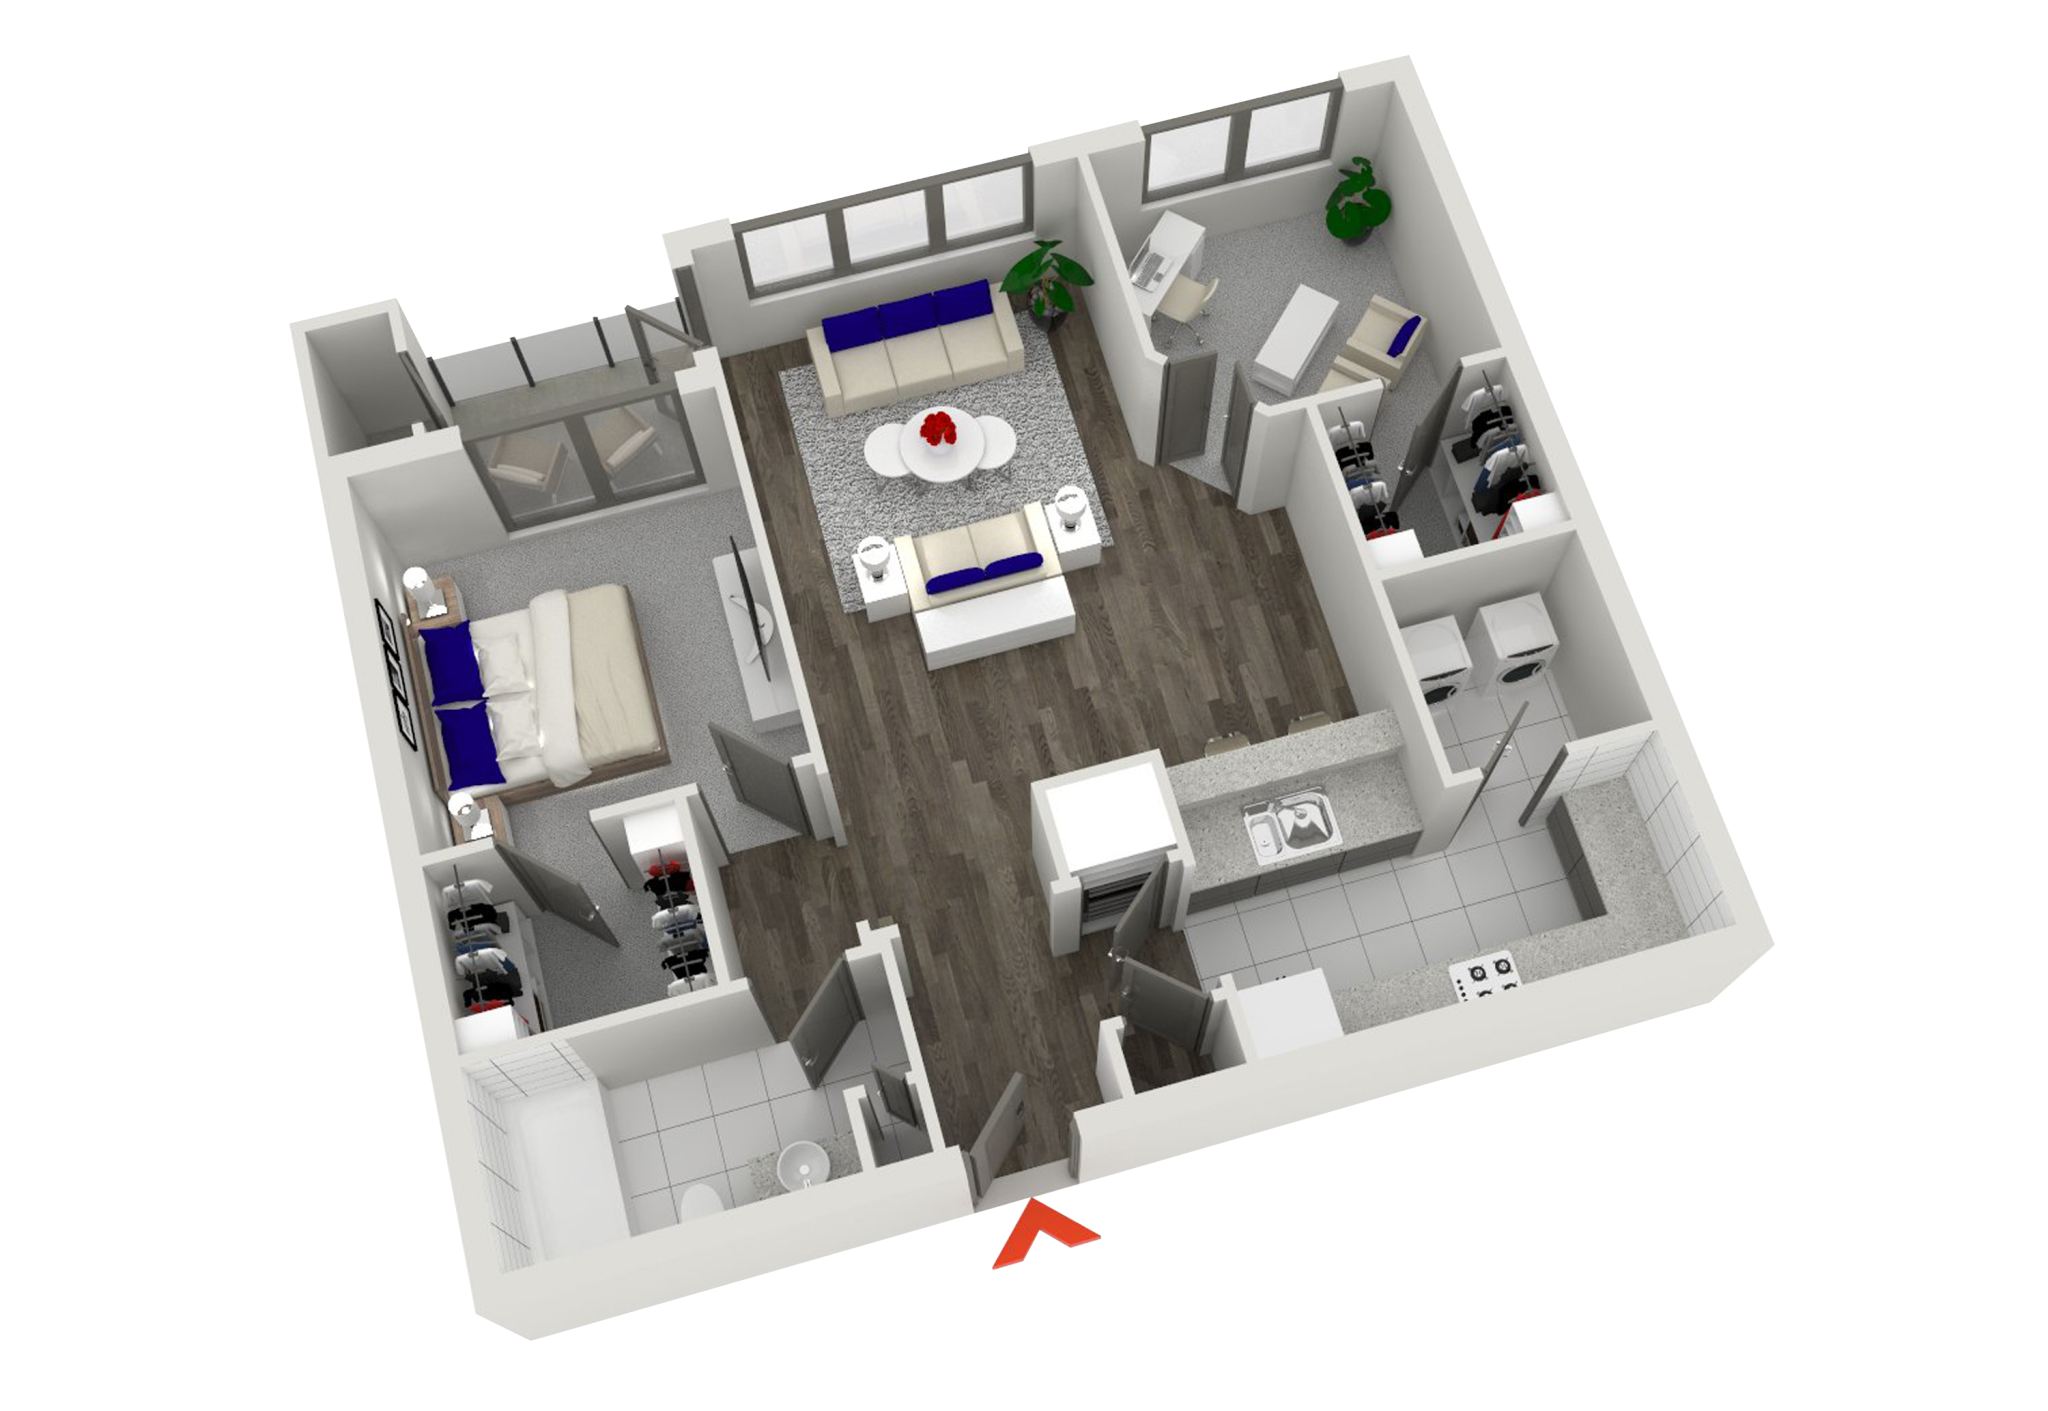 plan floor 1 floor home plans ideas picture